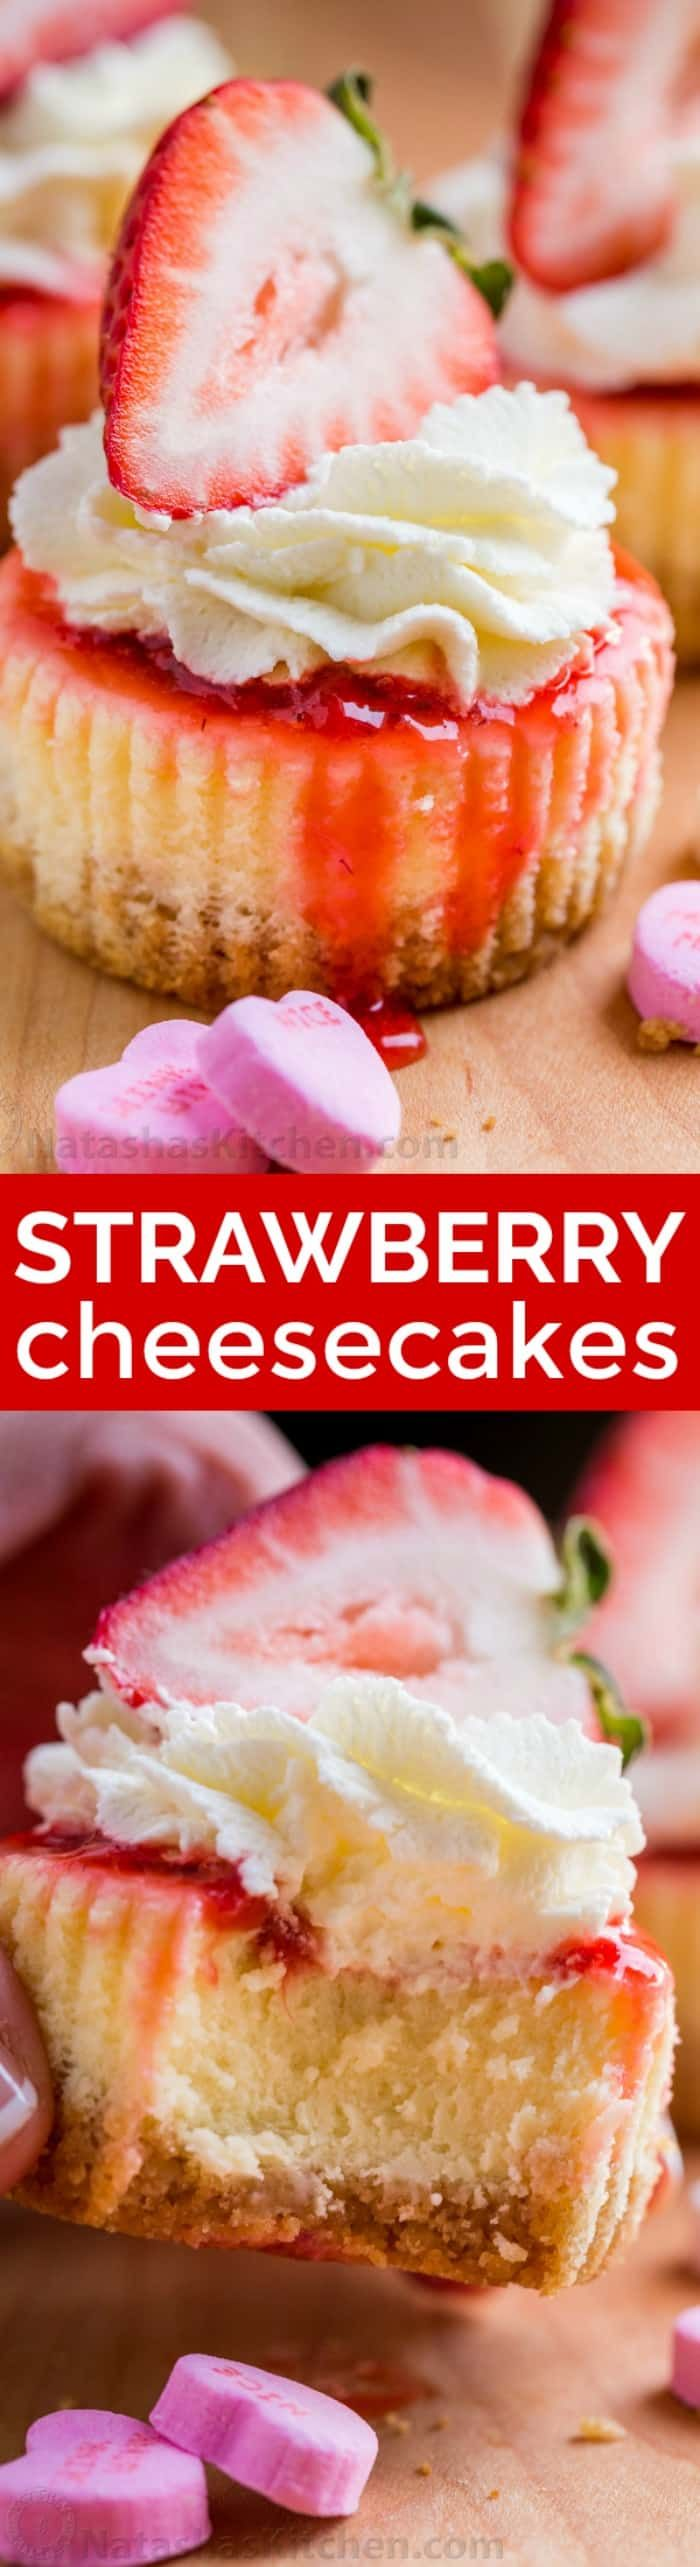 Mini strawberry cheesecakes are easy to make with simple ingredients. The texture in this strawberry cheesecake recipe is is creamy and smooth with a buttery crust. The fresh strawberry topping is irresistible. Valentine's Day Dessert! | natashaskitchen.com #minicheesecakes #strawberrycheesecake #cheesecake